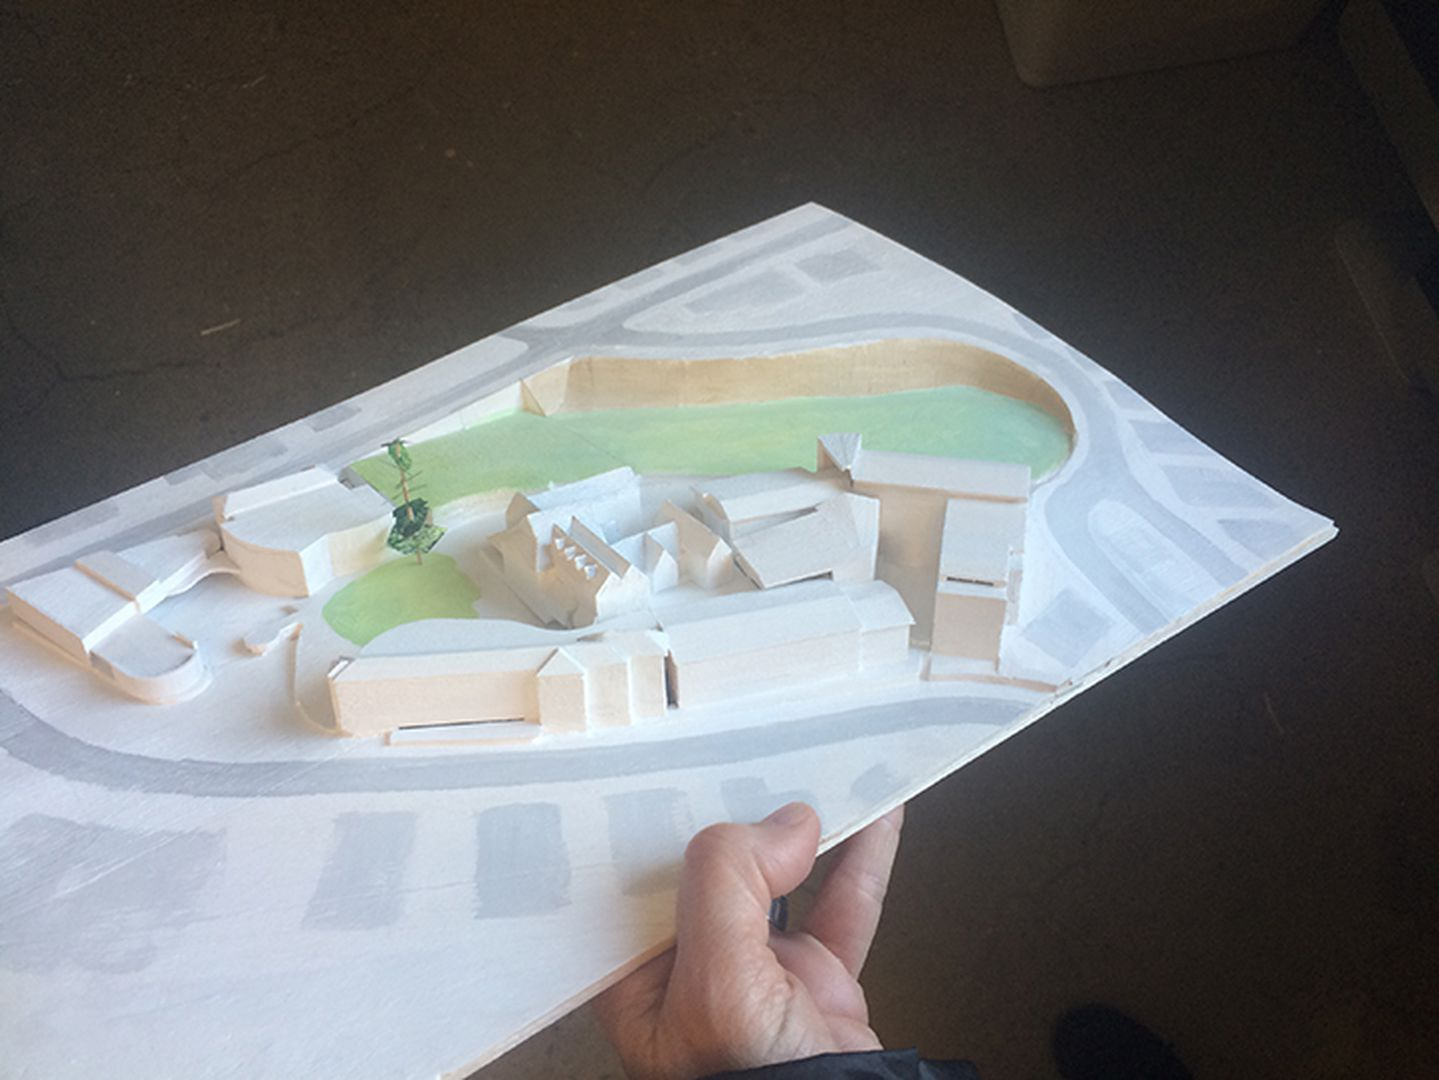 Kambala School Masterplan and Staff Green Room